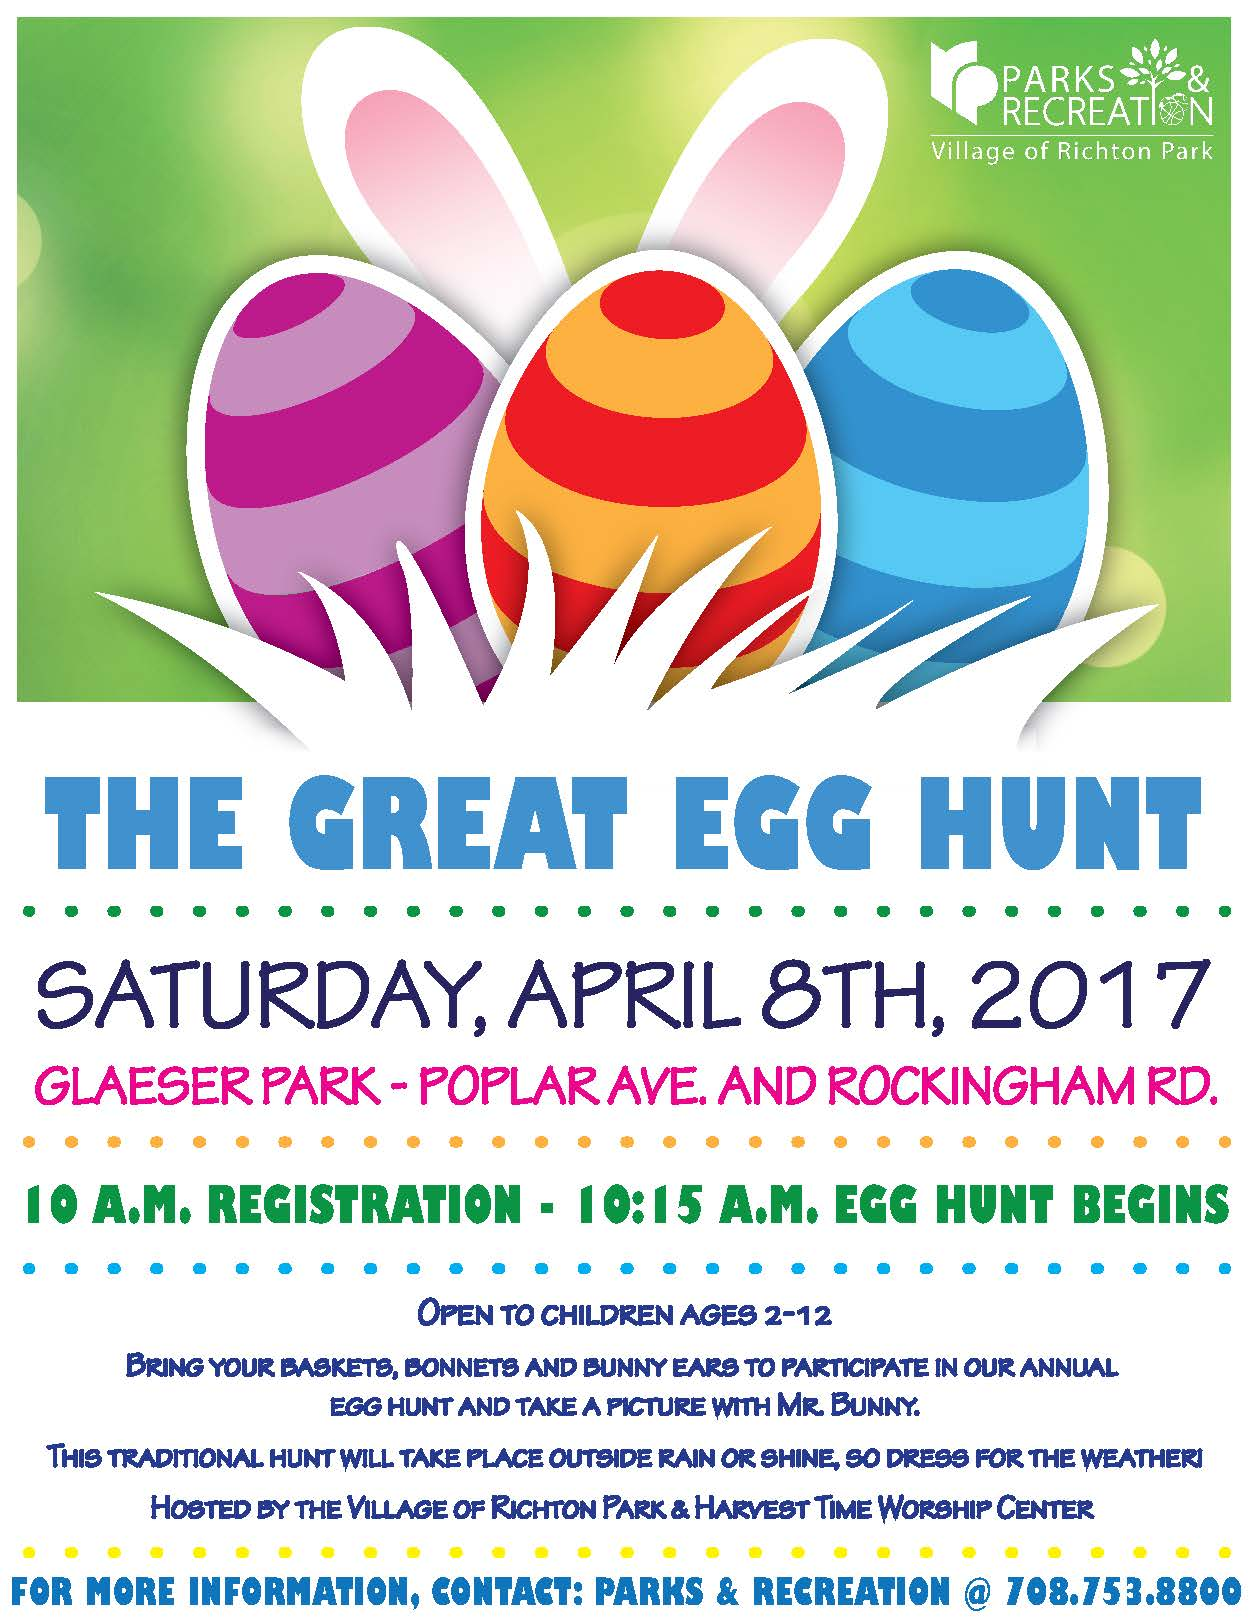 The Great Egg Hunt 2017 Flyer